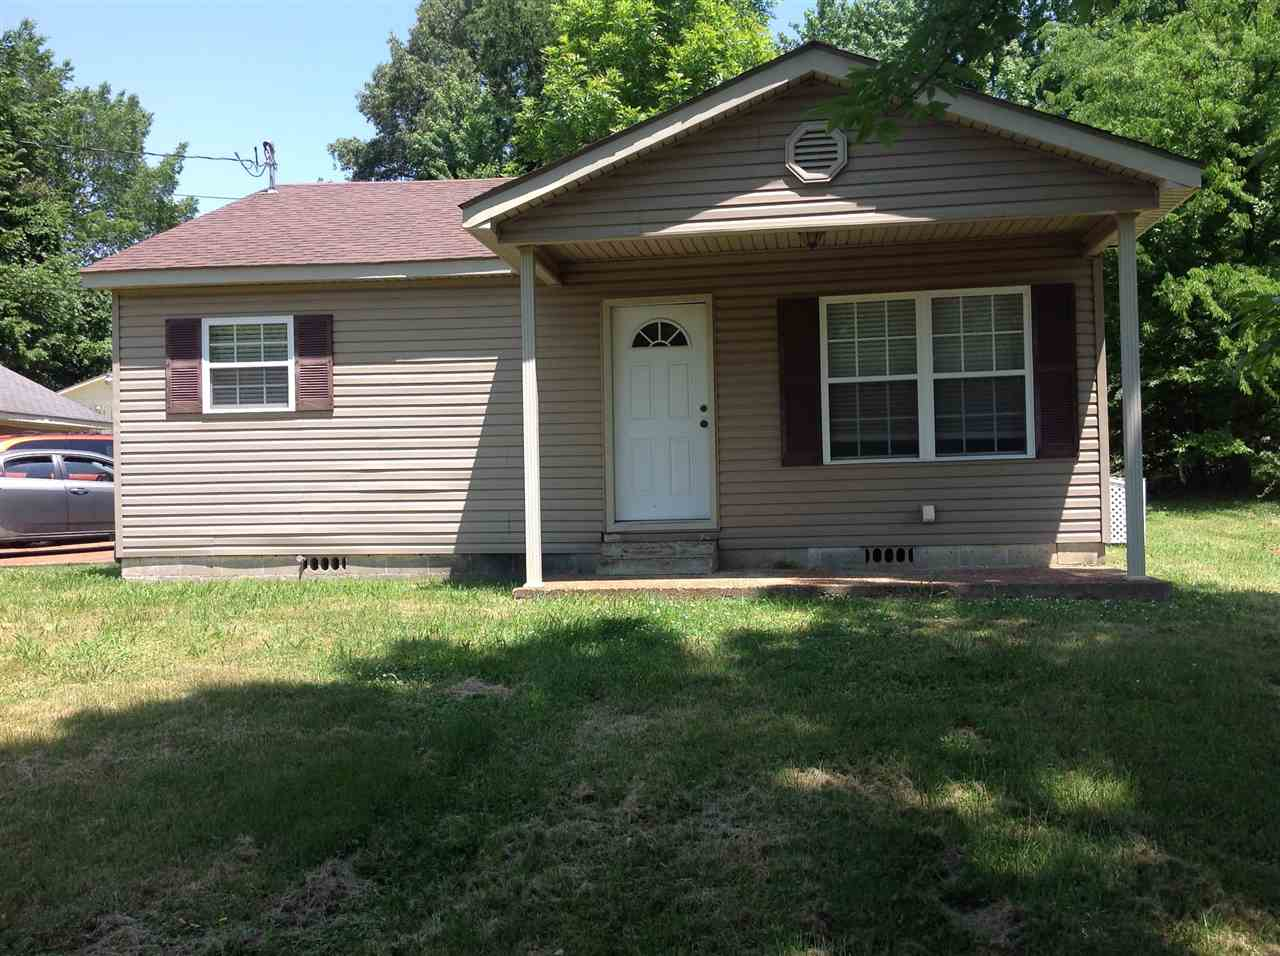 116 E Tickle Street,Dyersburg,Tennessee 38024,2 Bedrooms Bedrooms,1 BathroomBathrooms,Residential,116 E Tickle Street,182875